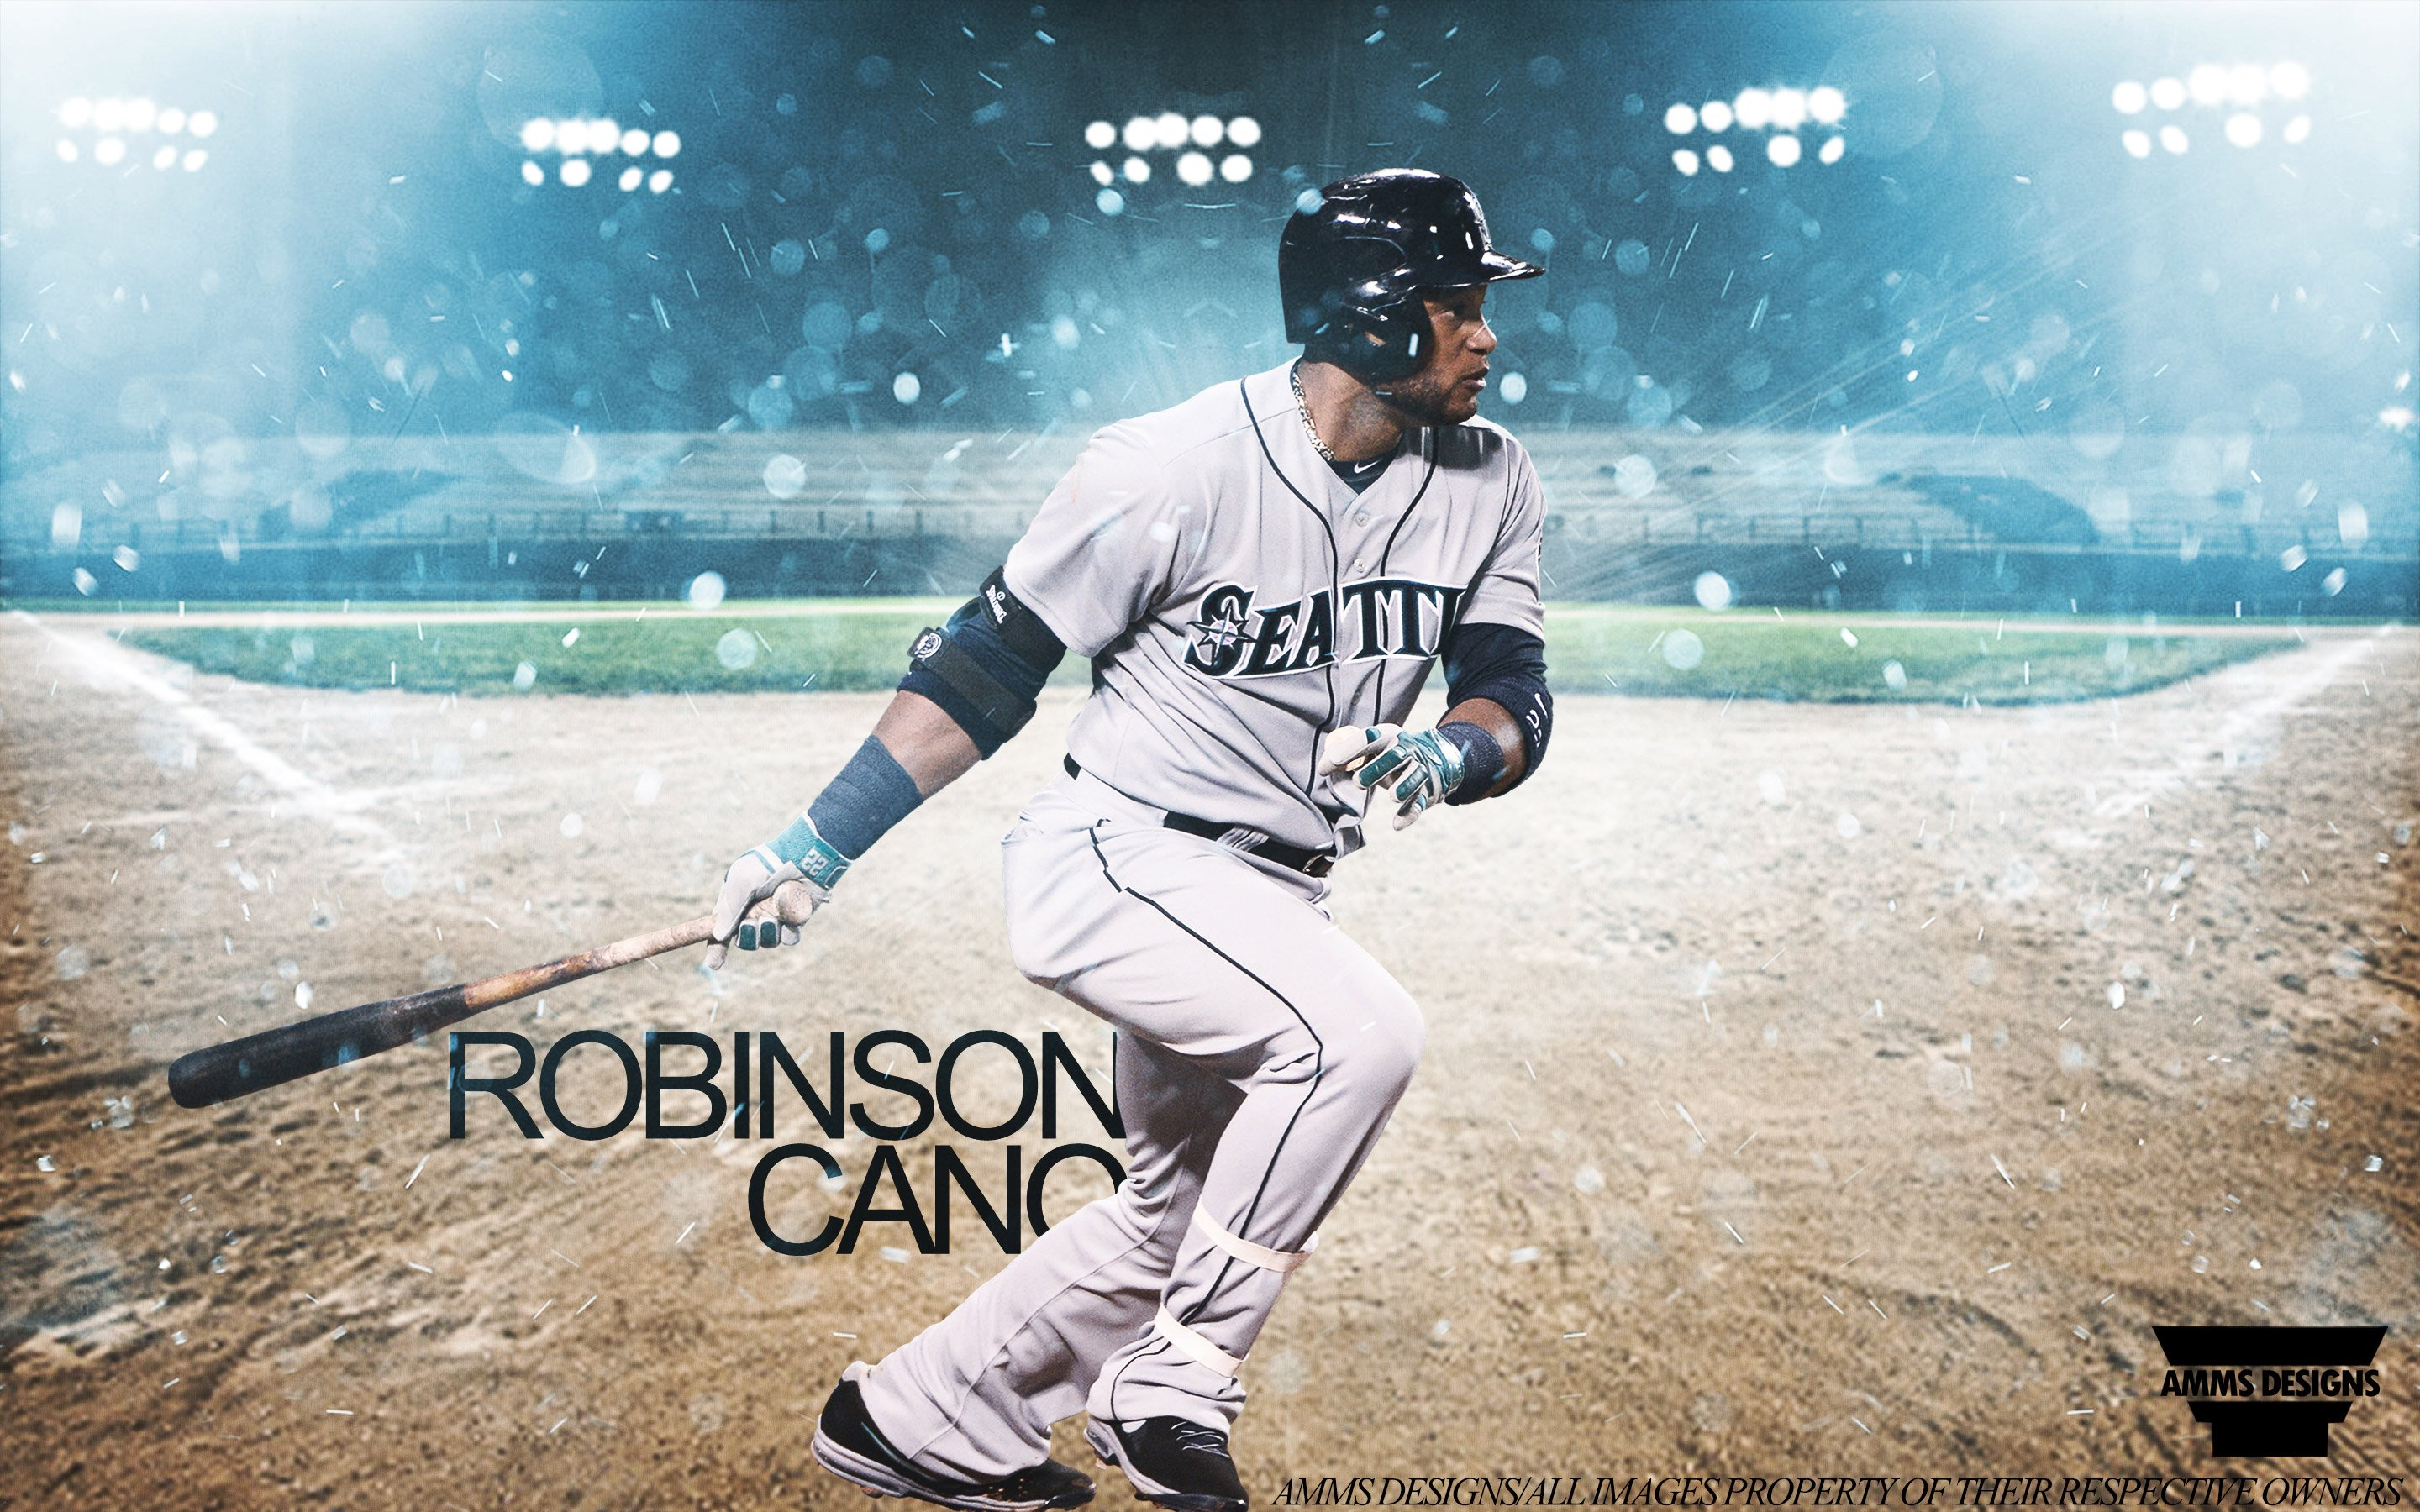 2880x1800 - Seattle Mariners Wallpapers 23